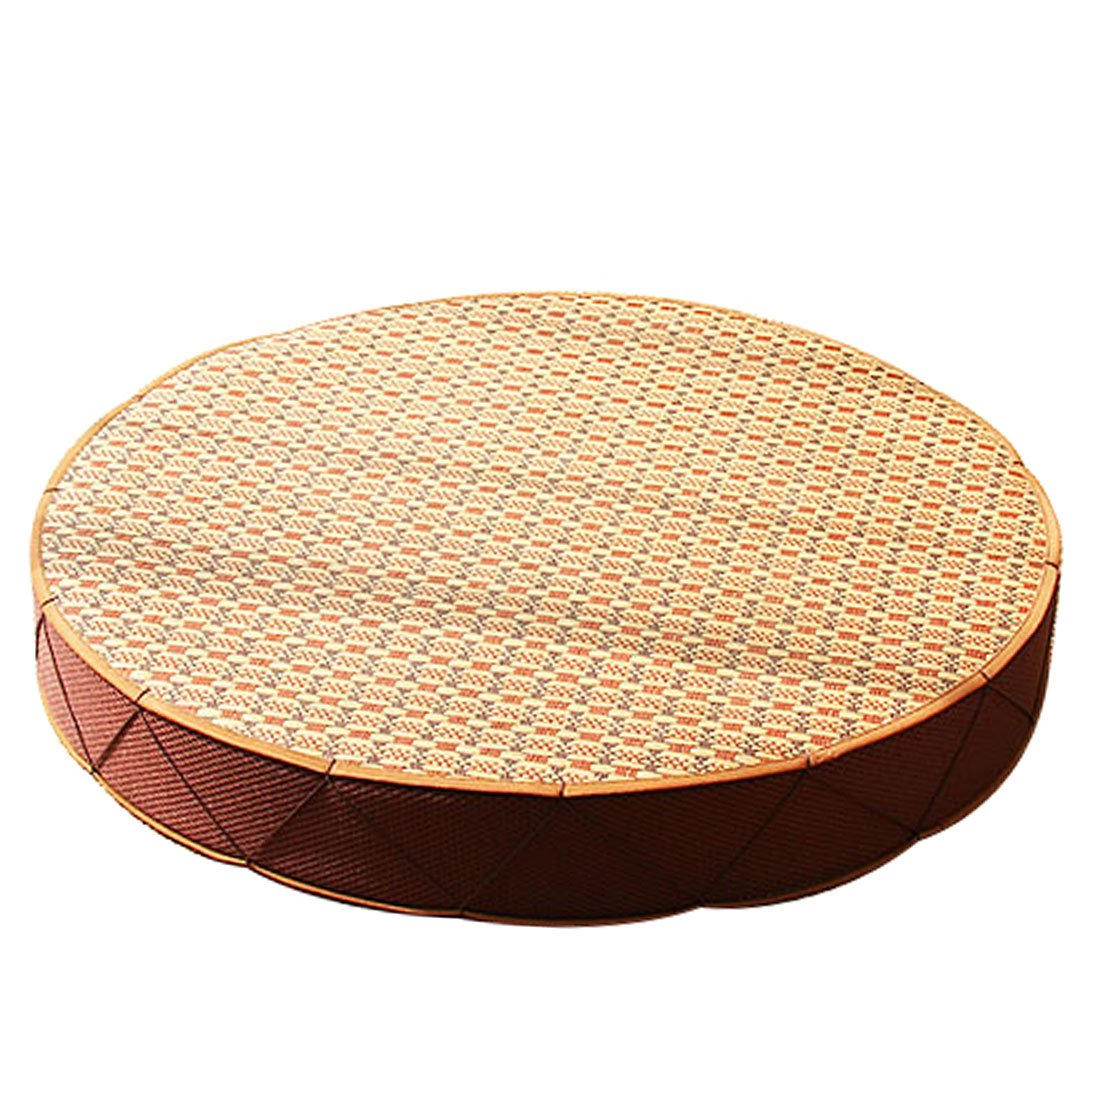 Round Wood Tree Soft Plush Chair Seat Cushion Stump Shaped Pillow 11.8x1.6inch